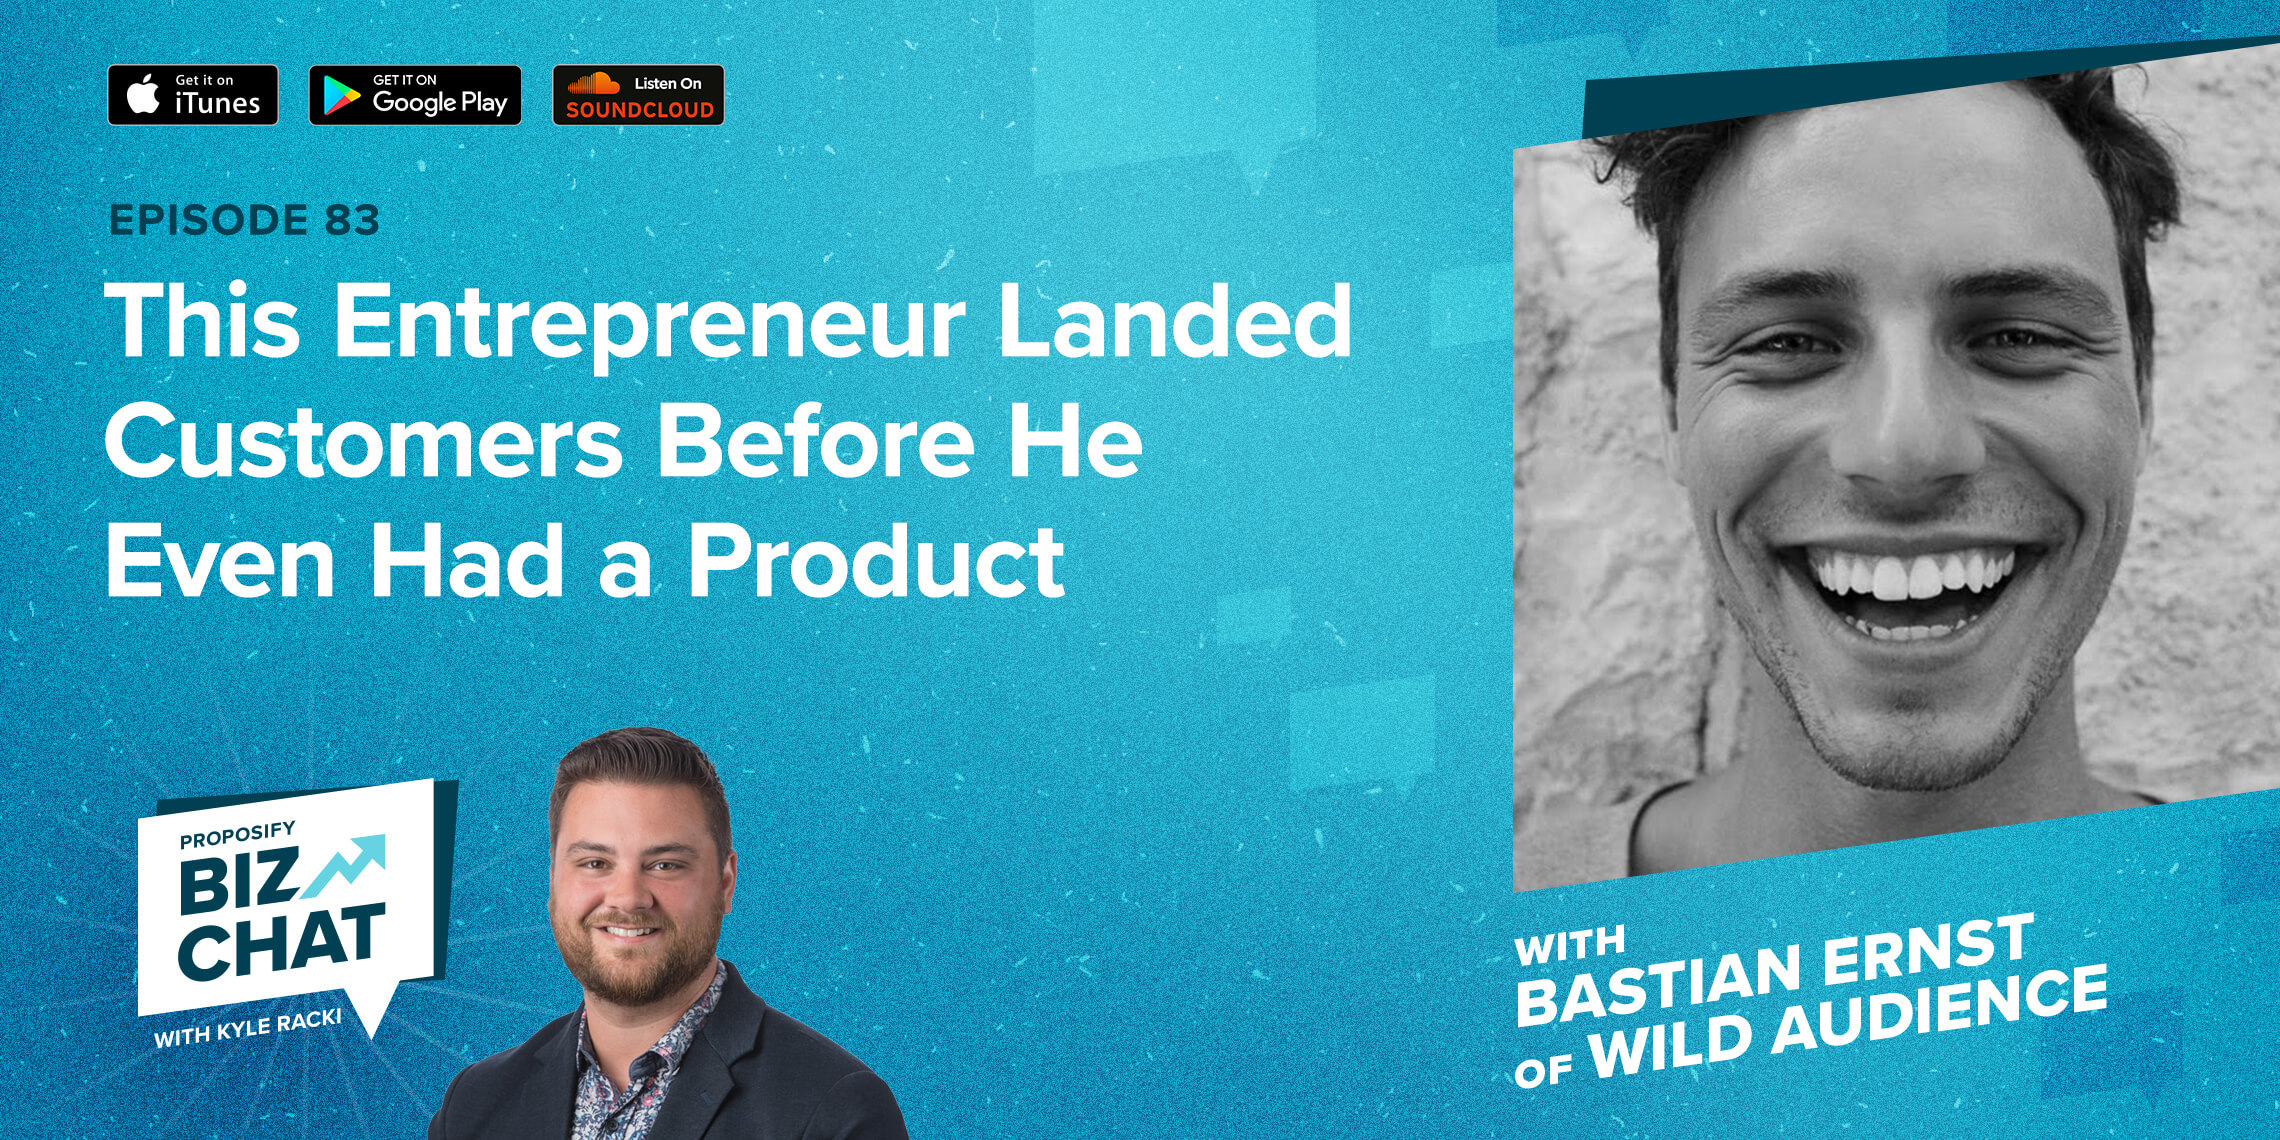 This Entrepreneur Landed Customers Before He Even Had a Product